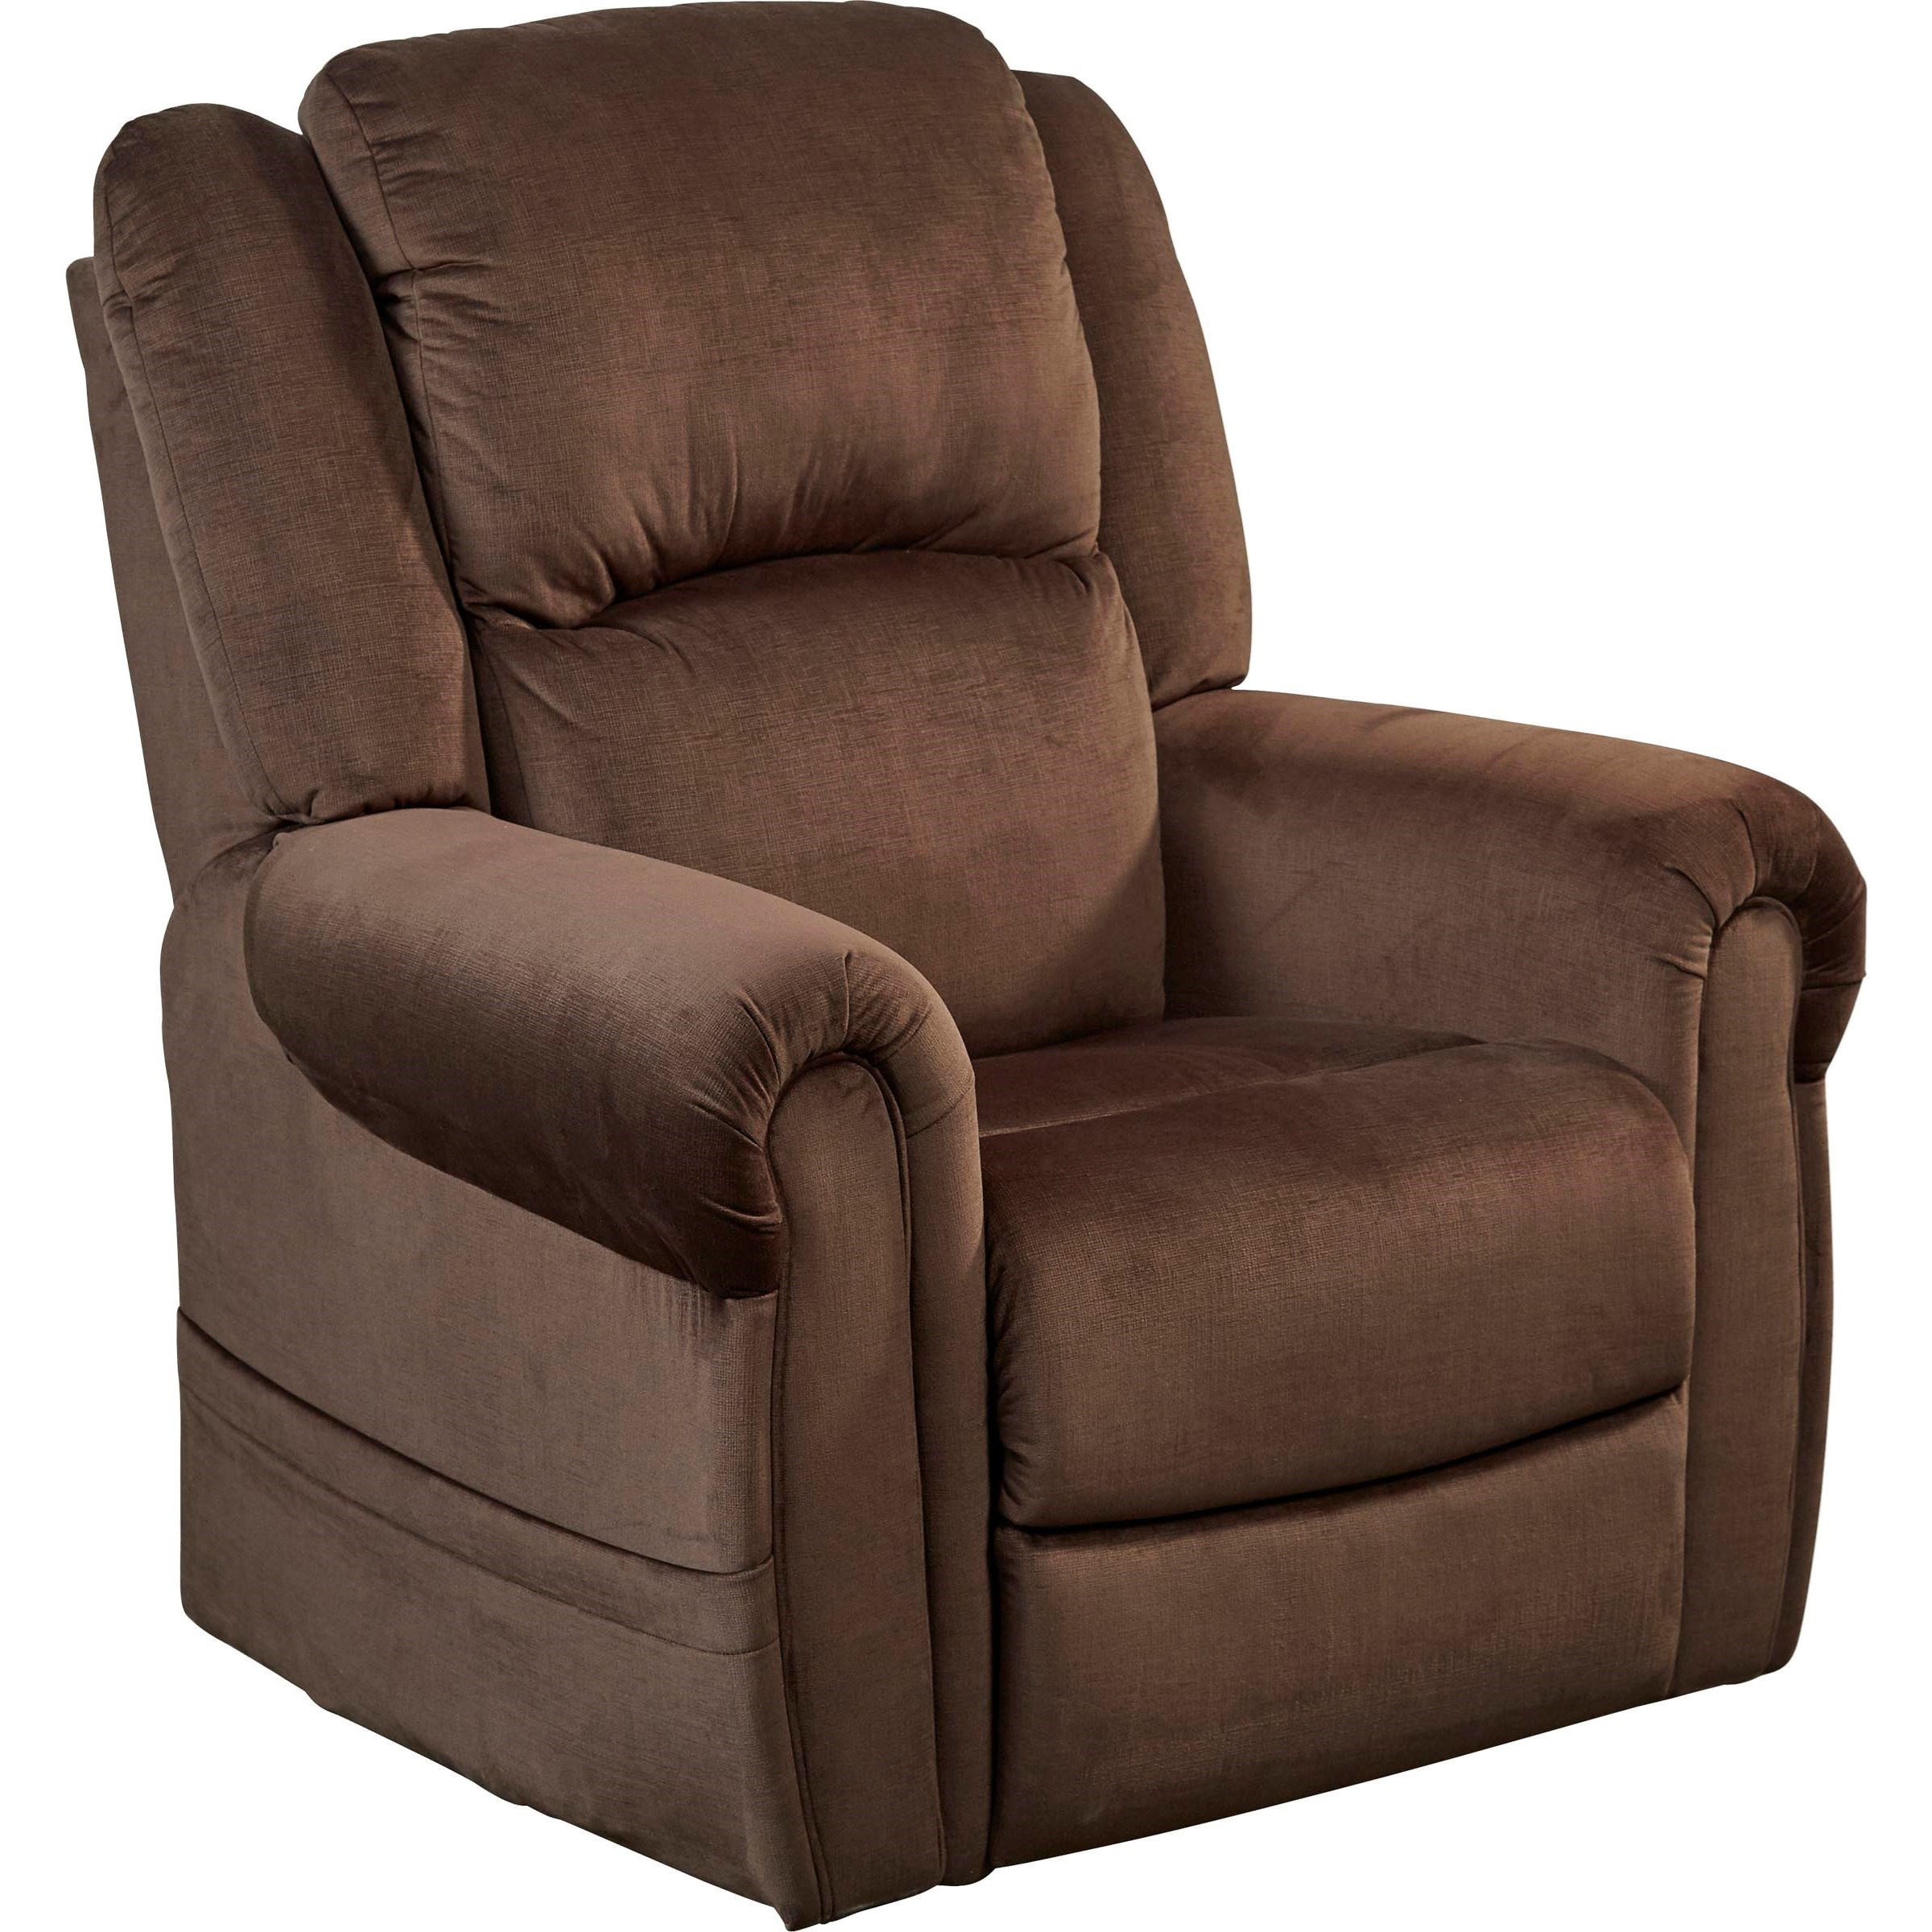 Catnapper Chair Catnapper Motion Chairs And Recliners 4859 Spencer Power